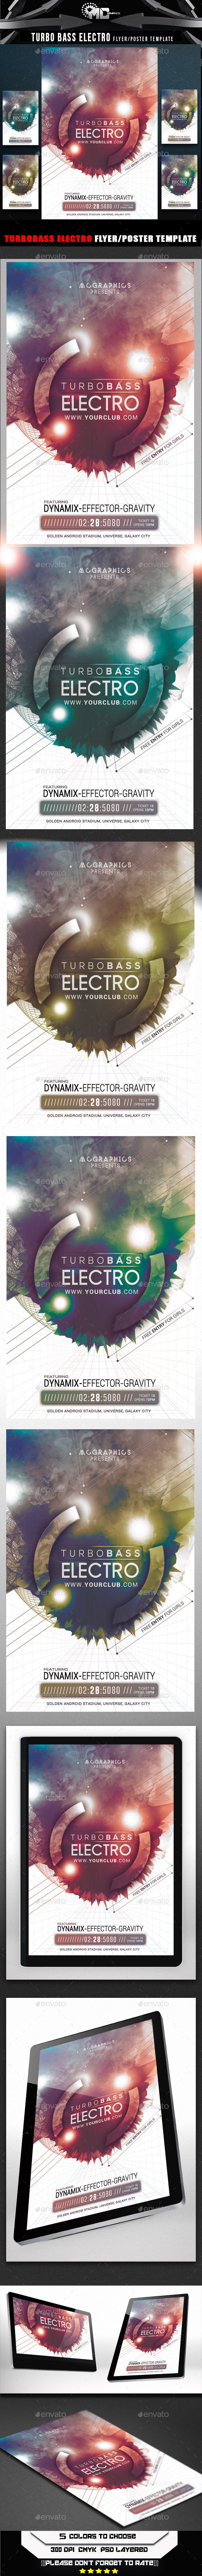 GraphicRiver Turbo Bass Electro Flyer Template 9919931